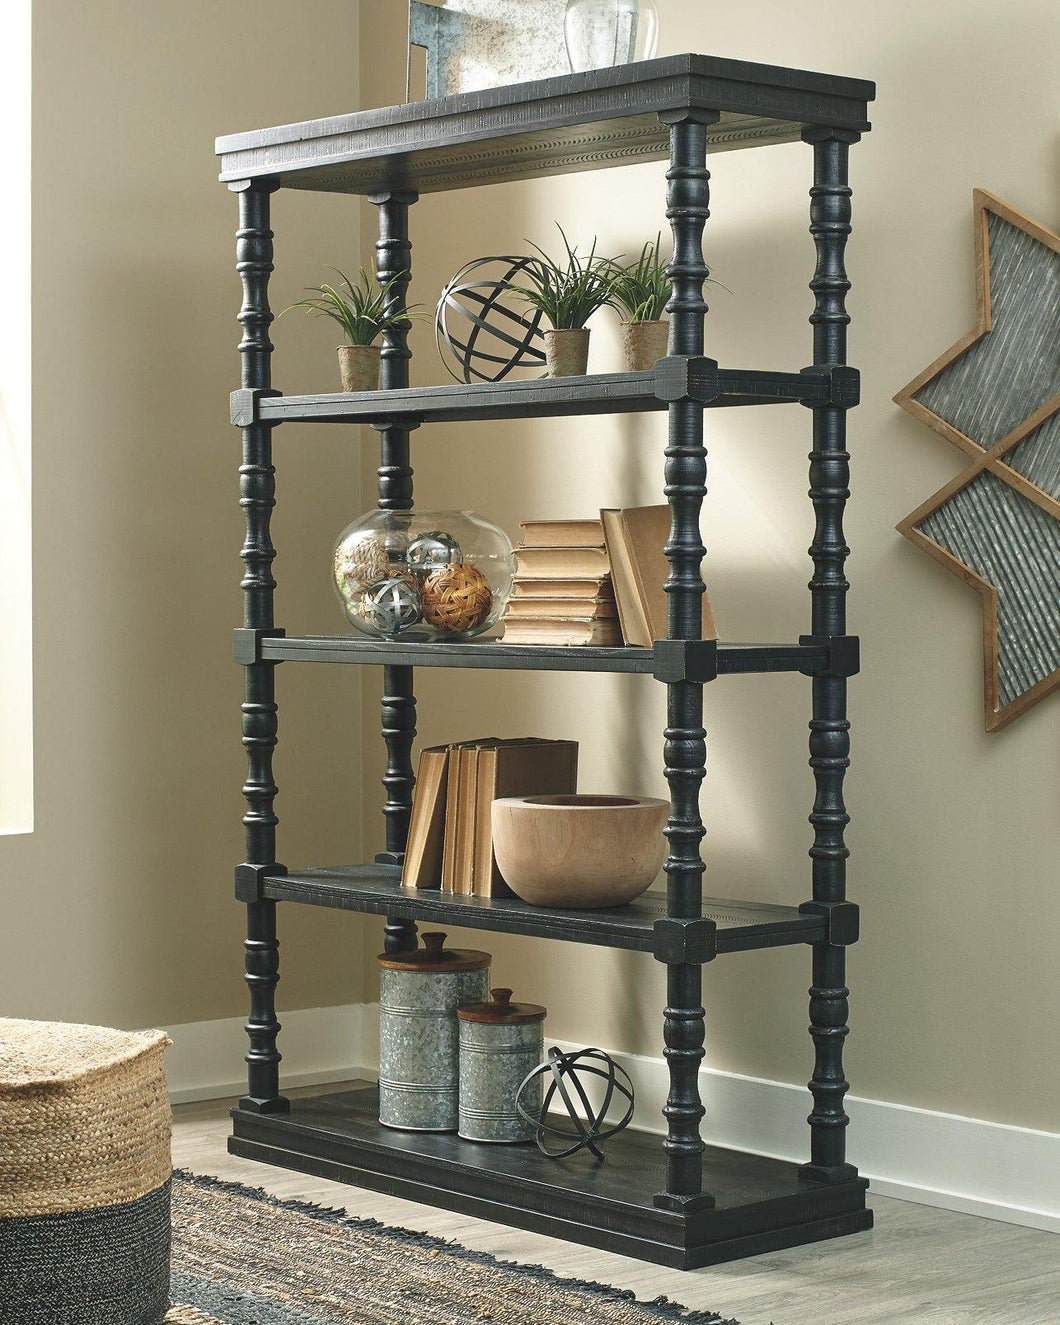 Dannerville 74 Bookcase A4000281 By Ashley Furniture from sofafair